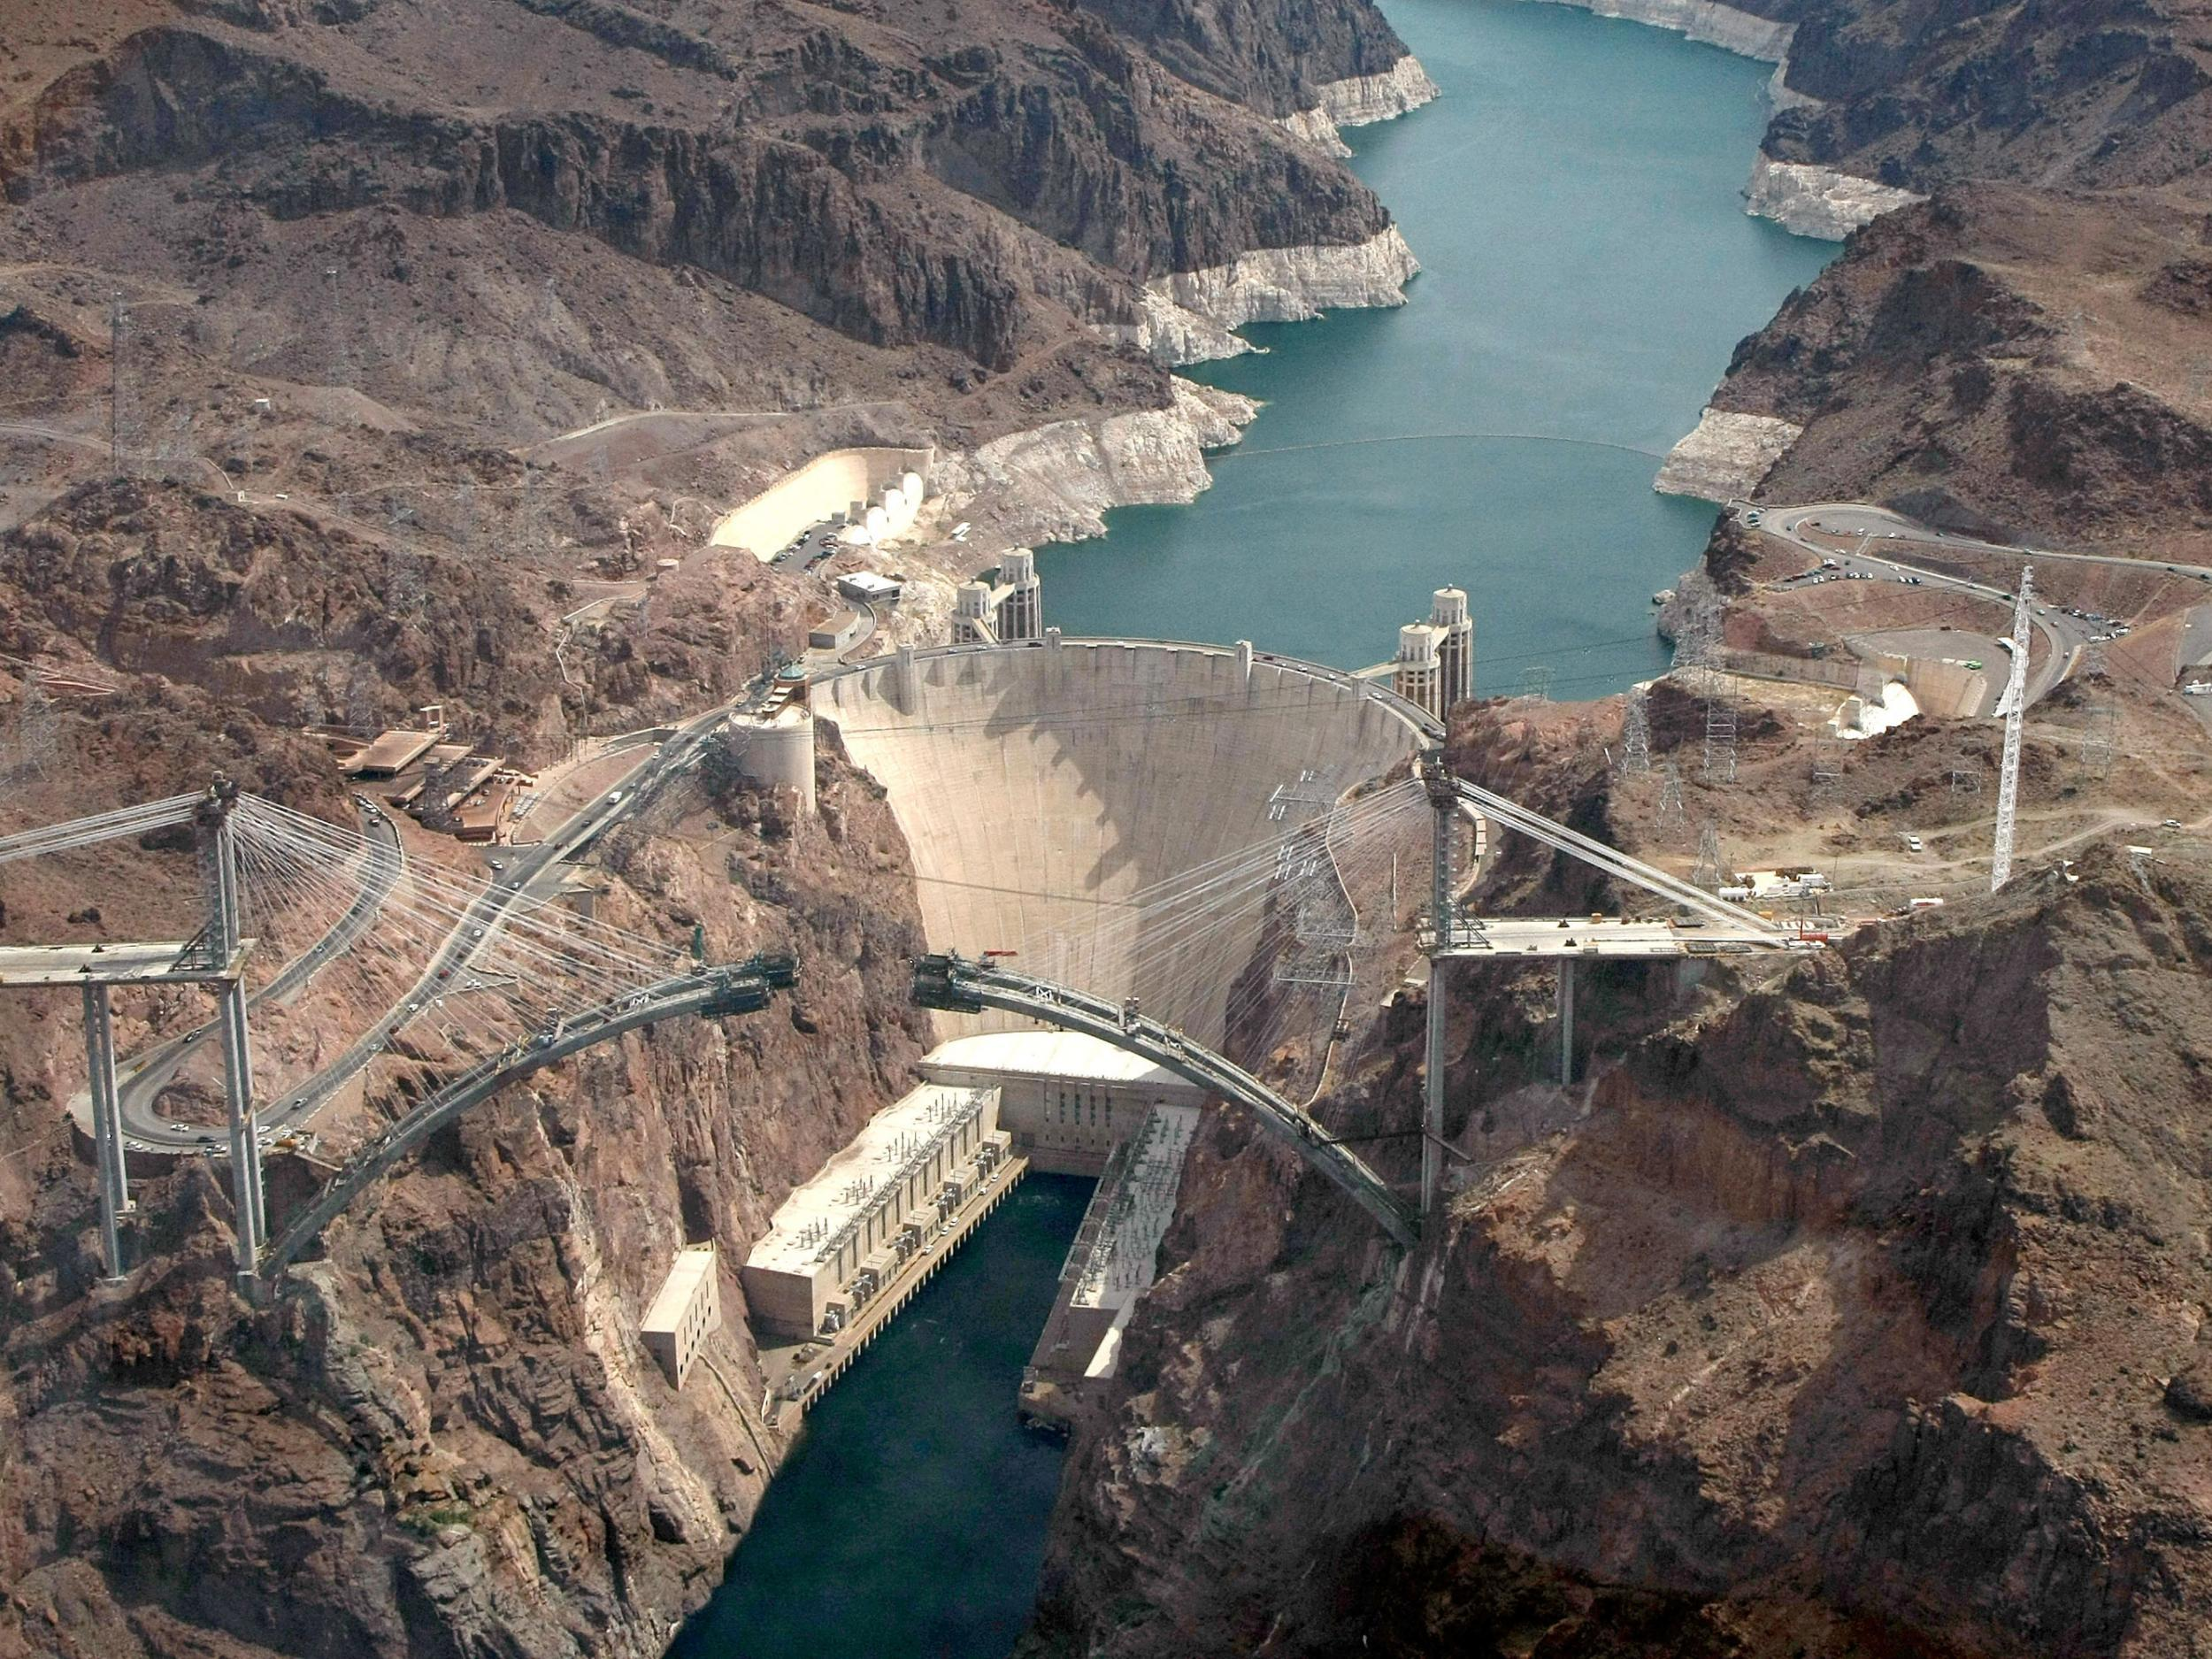 hoover dam - latest news, breaking stories and comment - The